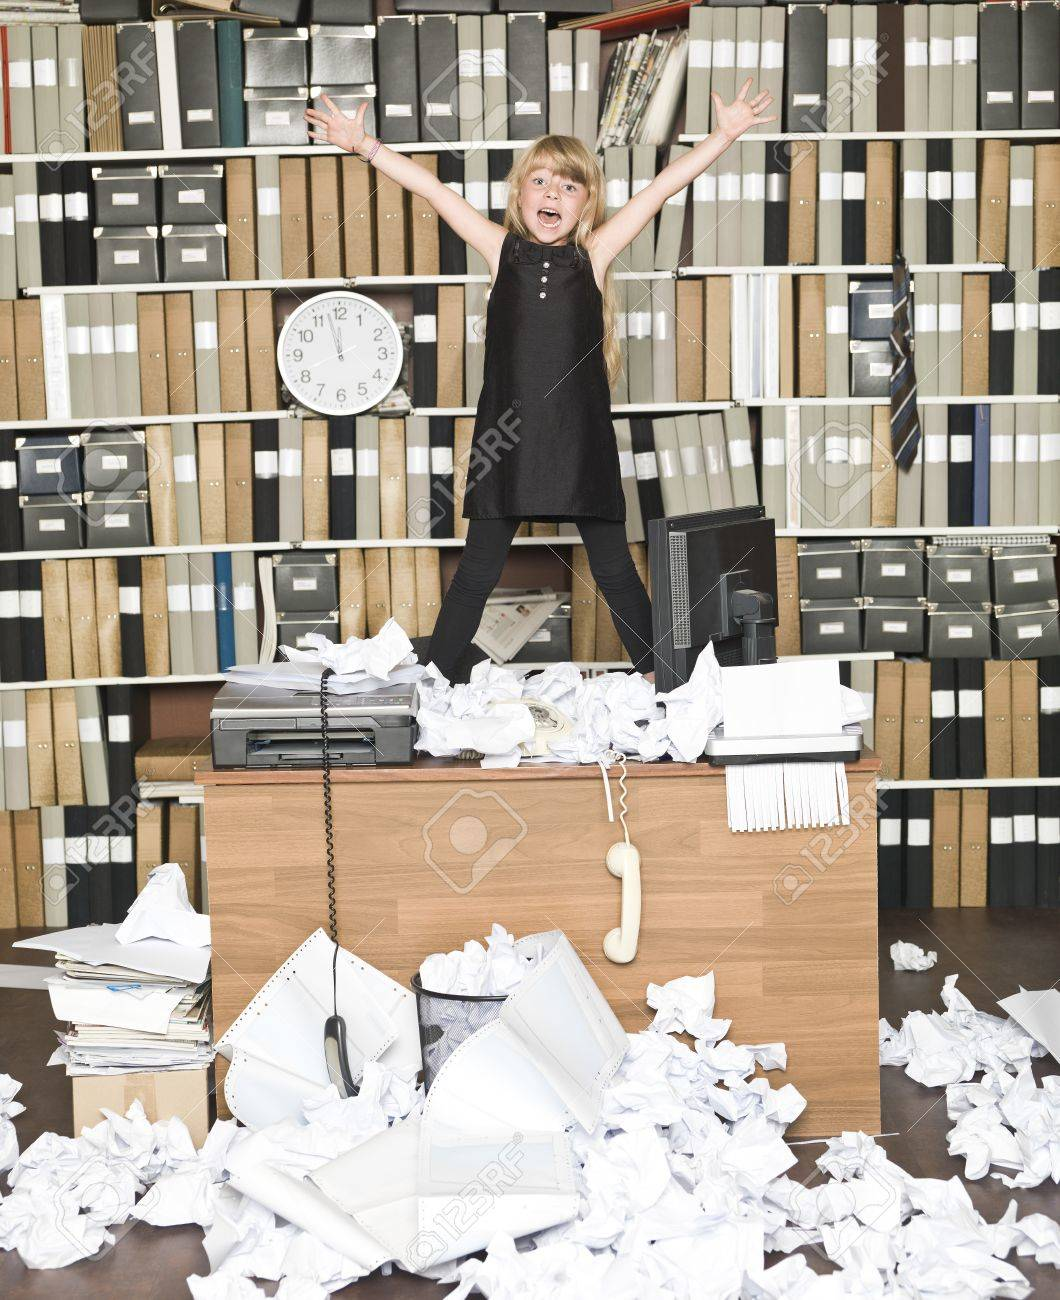 messy office pictures. Young Happy Business Girl At A Messy Office Stock Photo - 14903400 Pictures